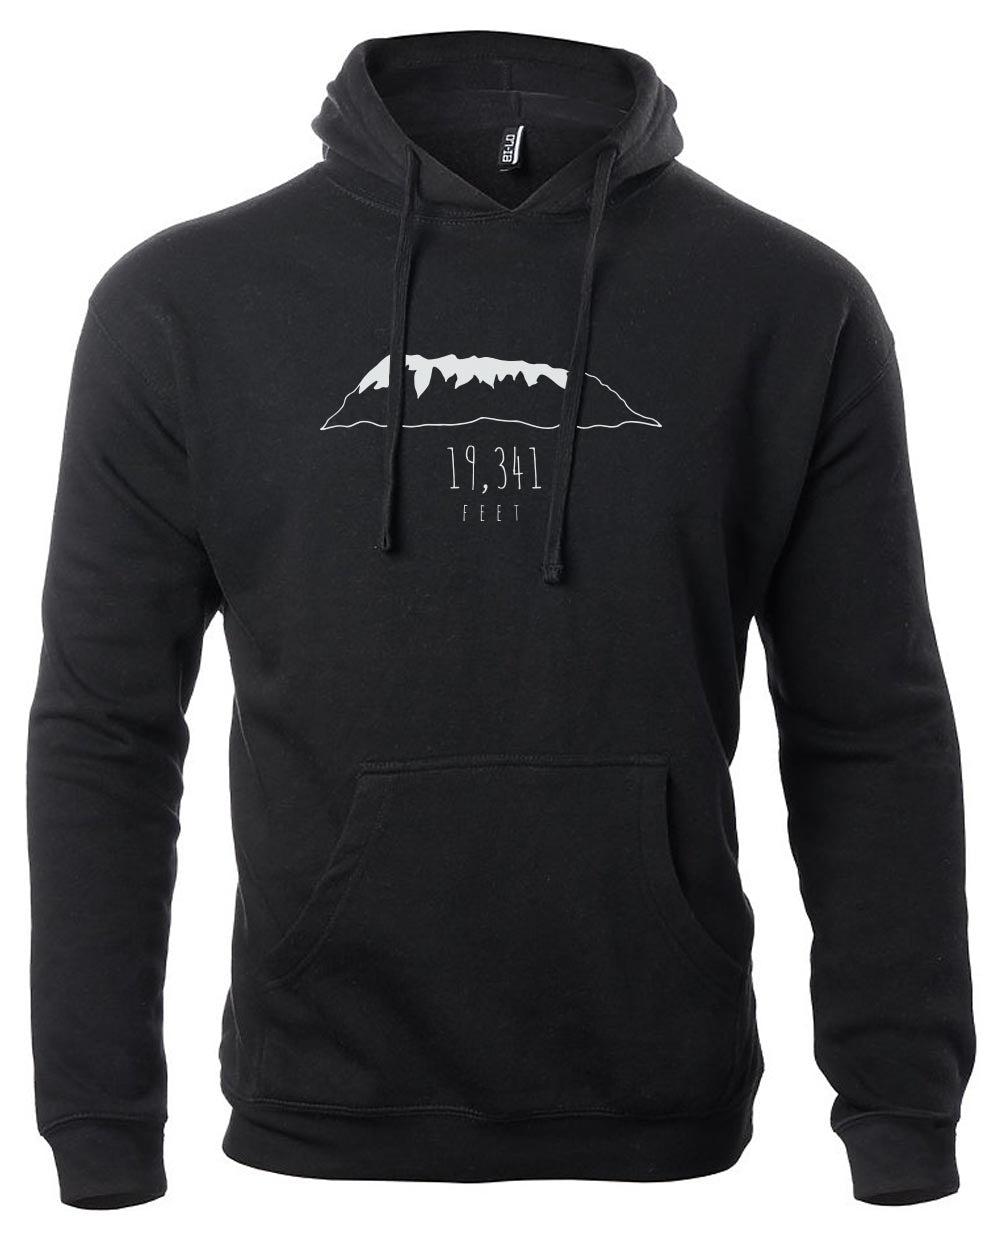 Premium Fleece Black Unisex Hoodie - Feet